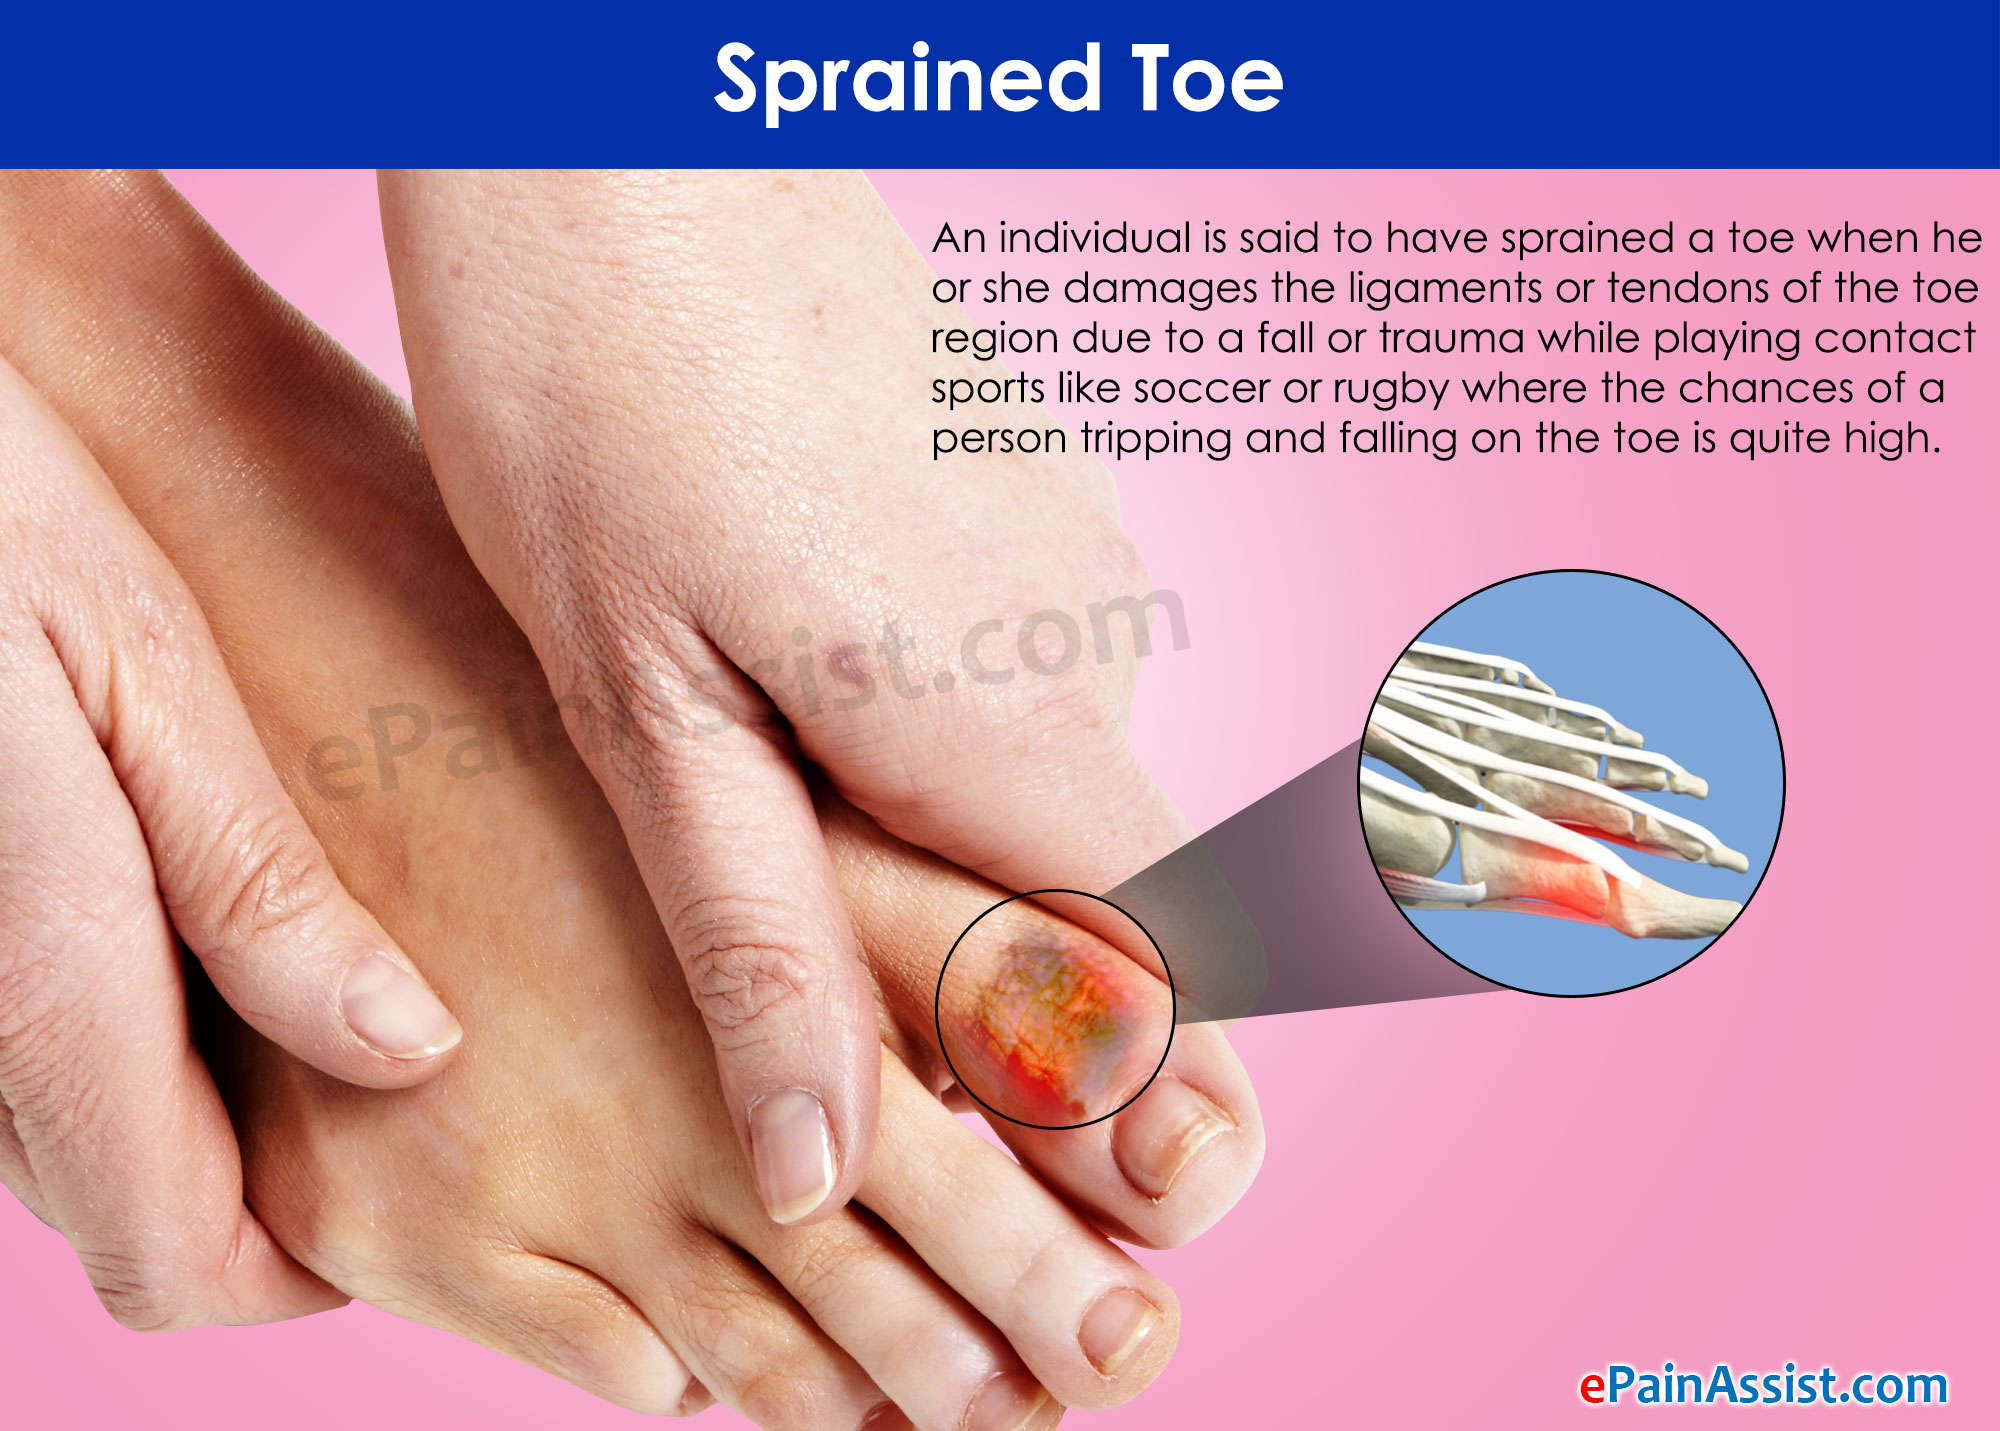 Sprained Toe|Causes|Symptoms|Treatment|Diagnosis